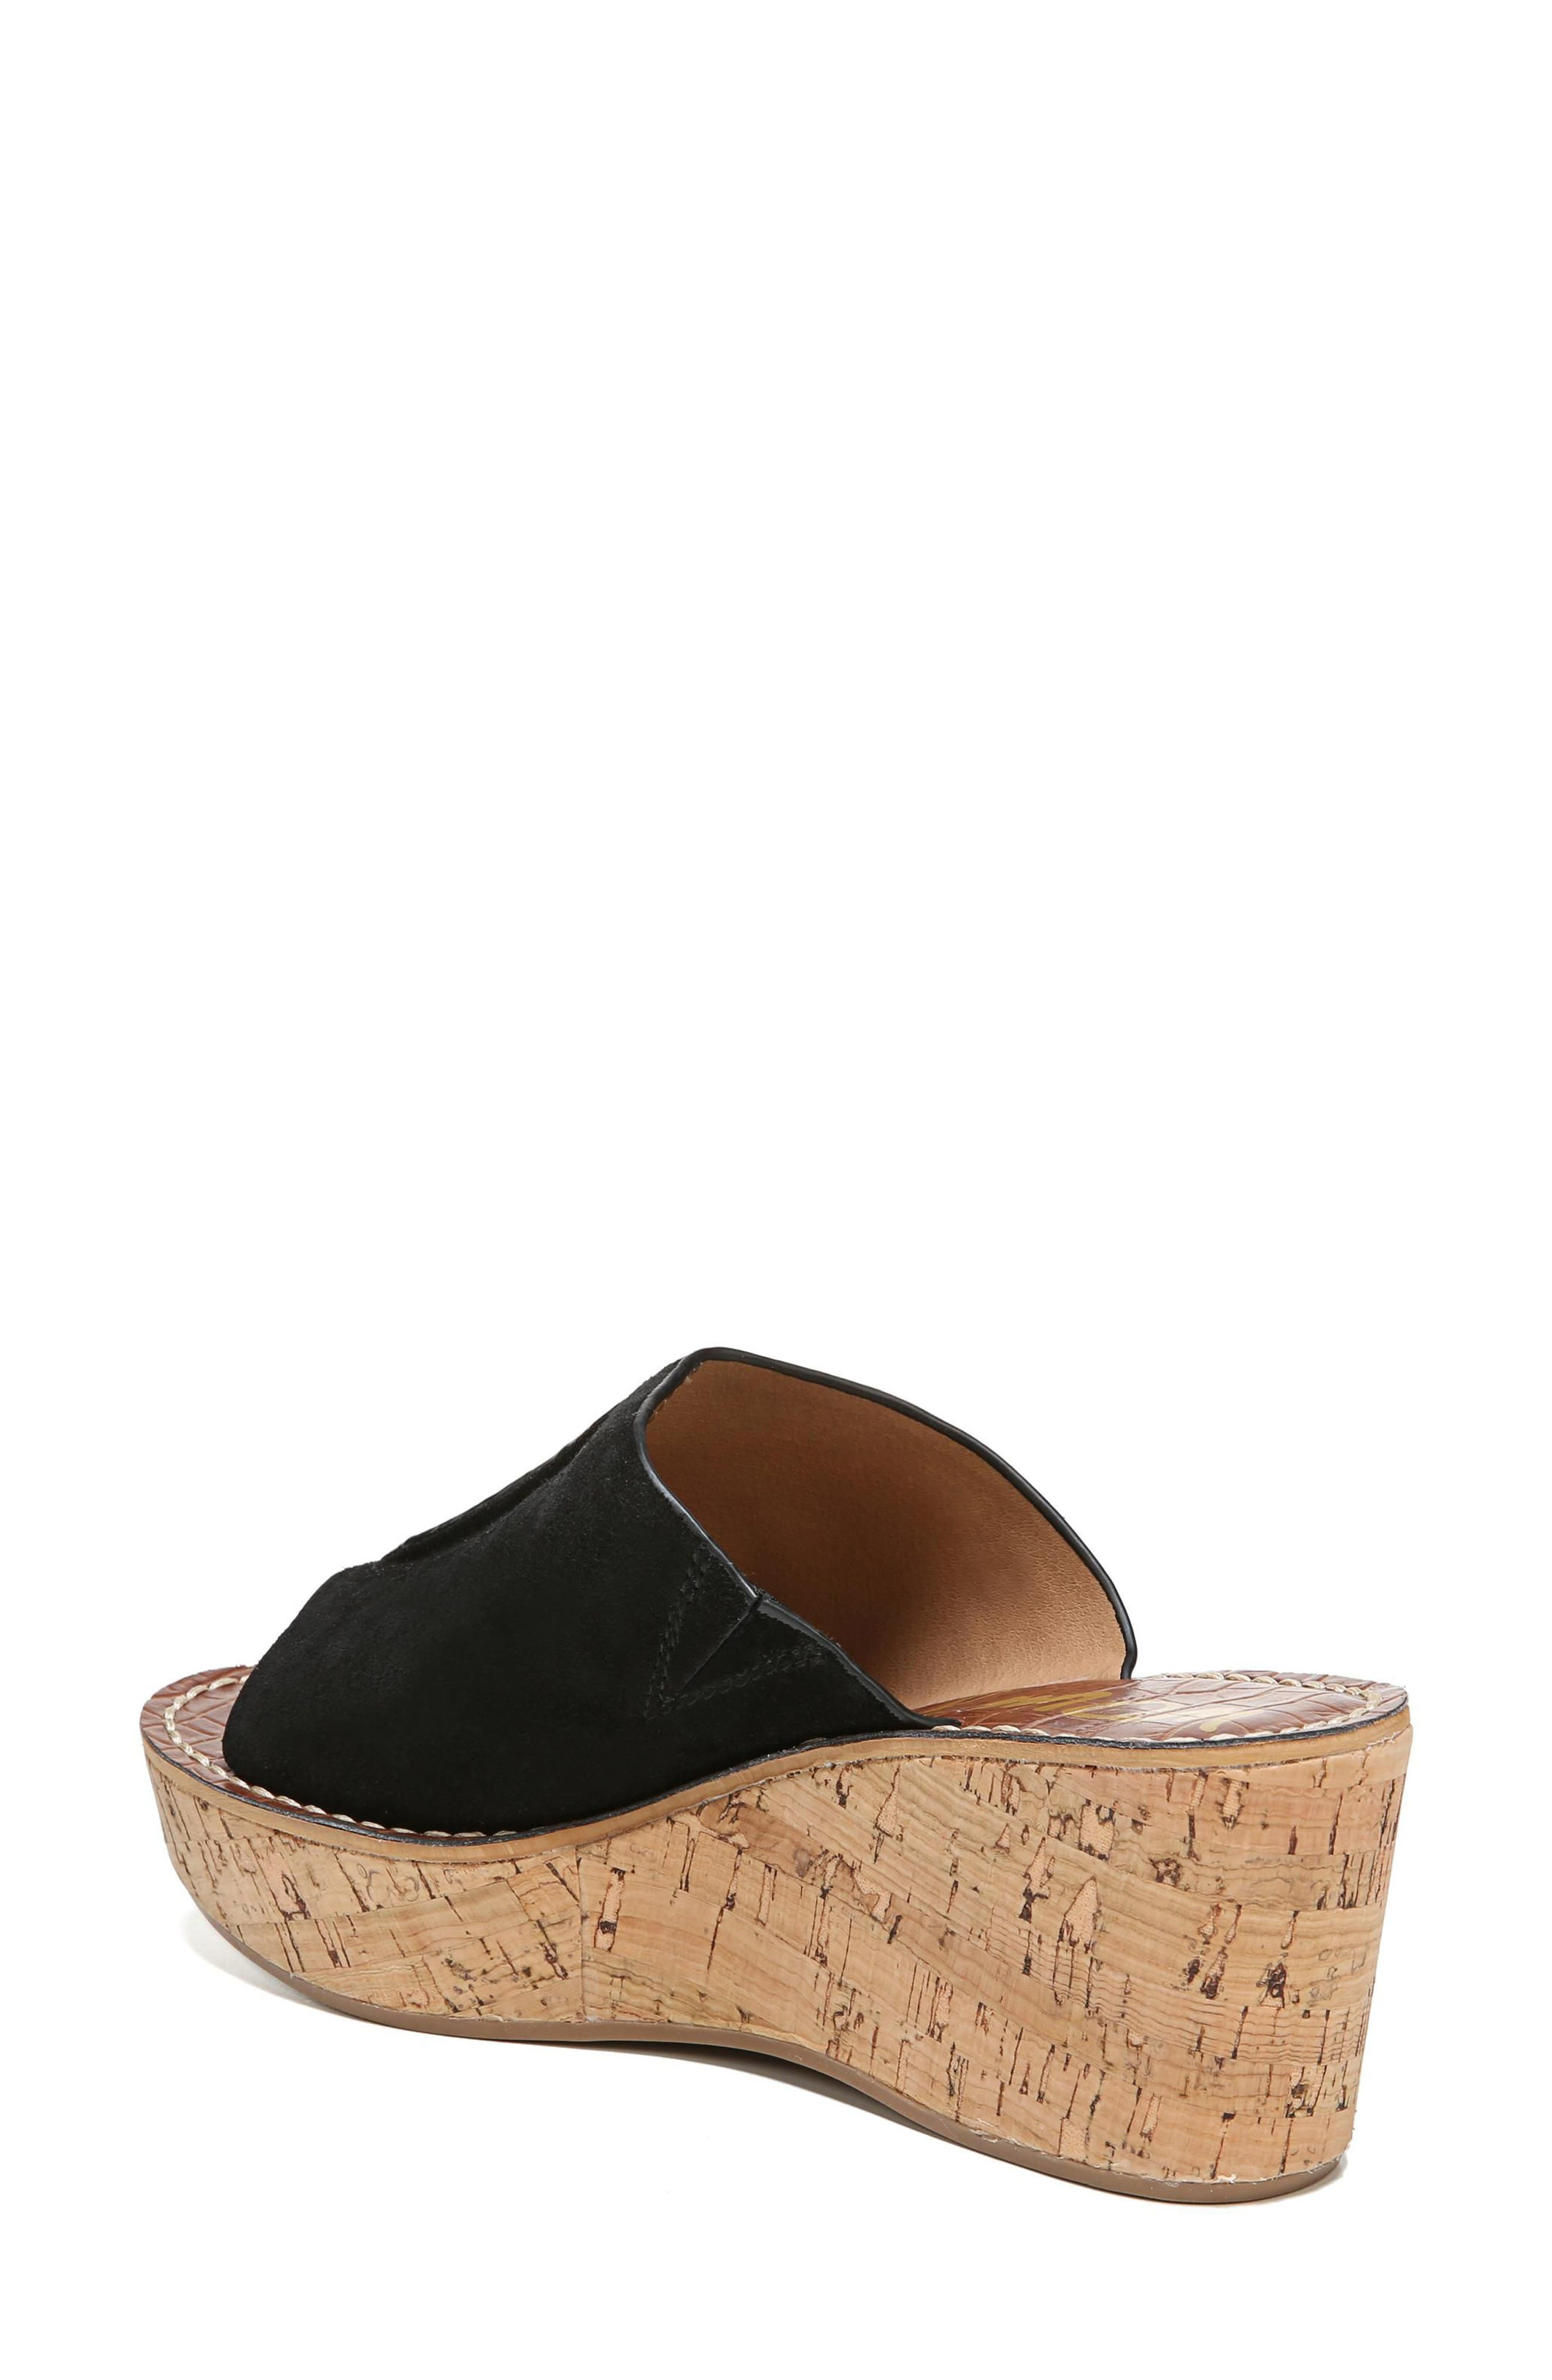 SAM EDELMAN,                             Ranger Platform Sandal,                             Alternate thumbnail 2, color,                             BLACK SUEDE